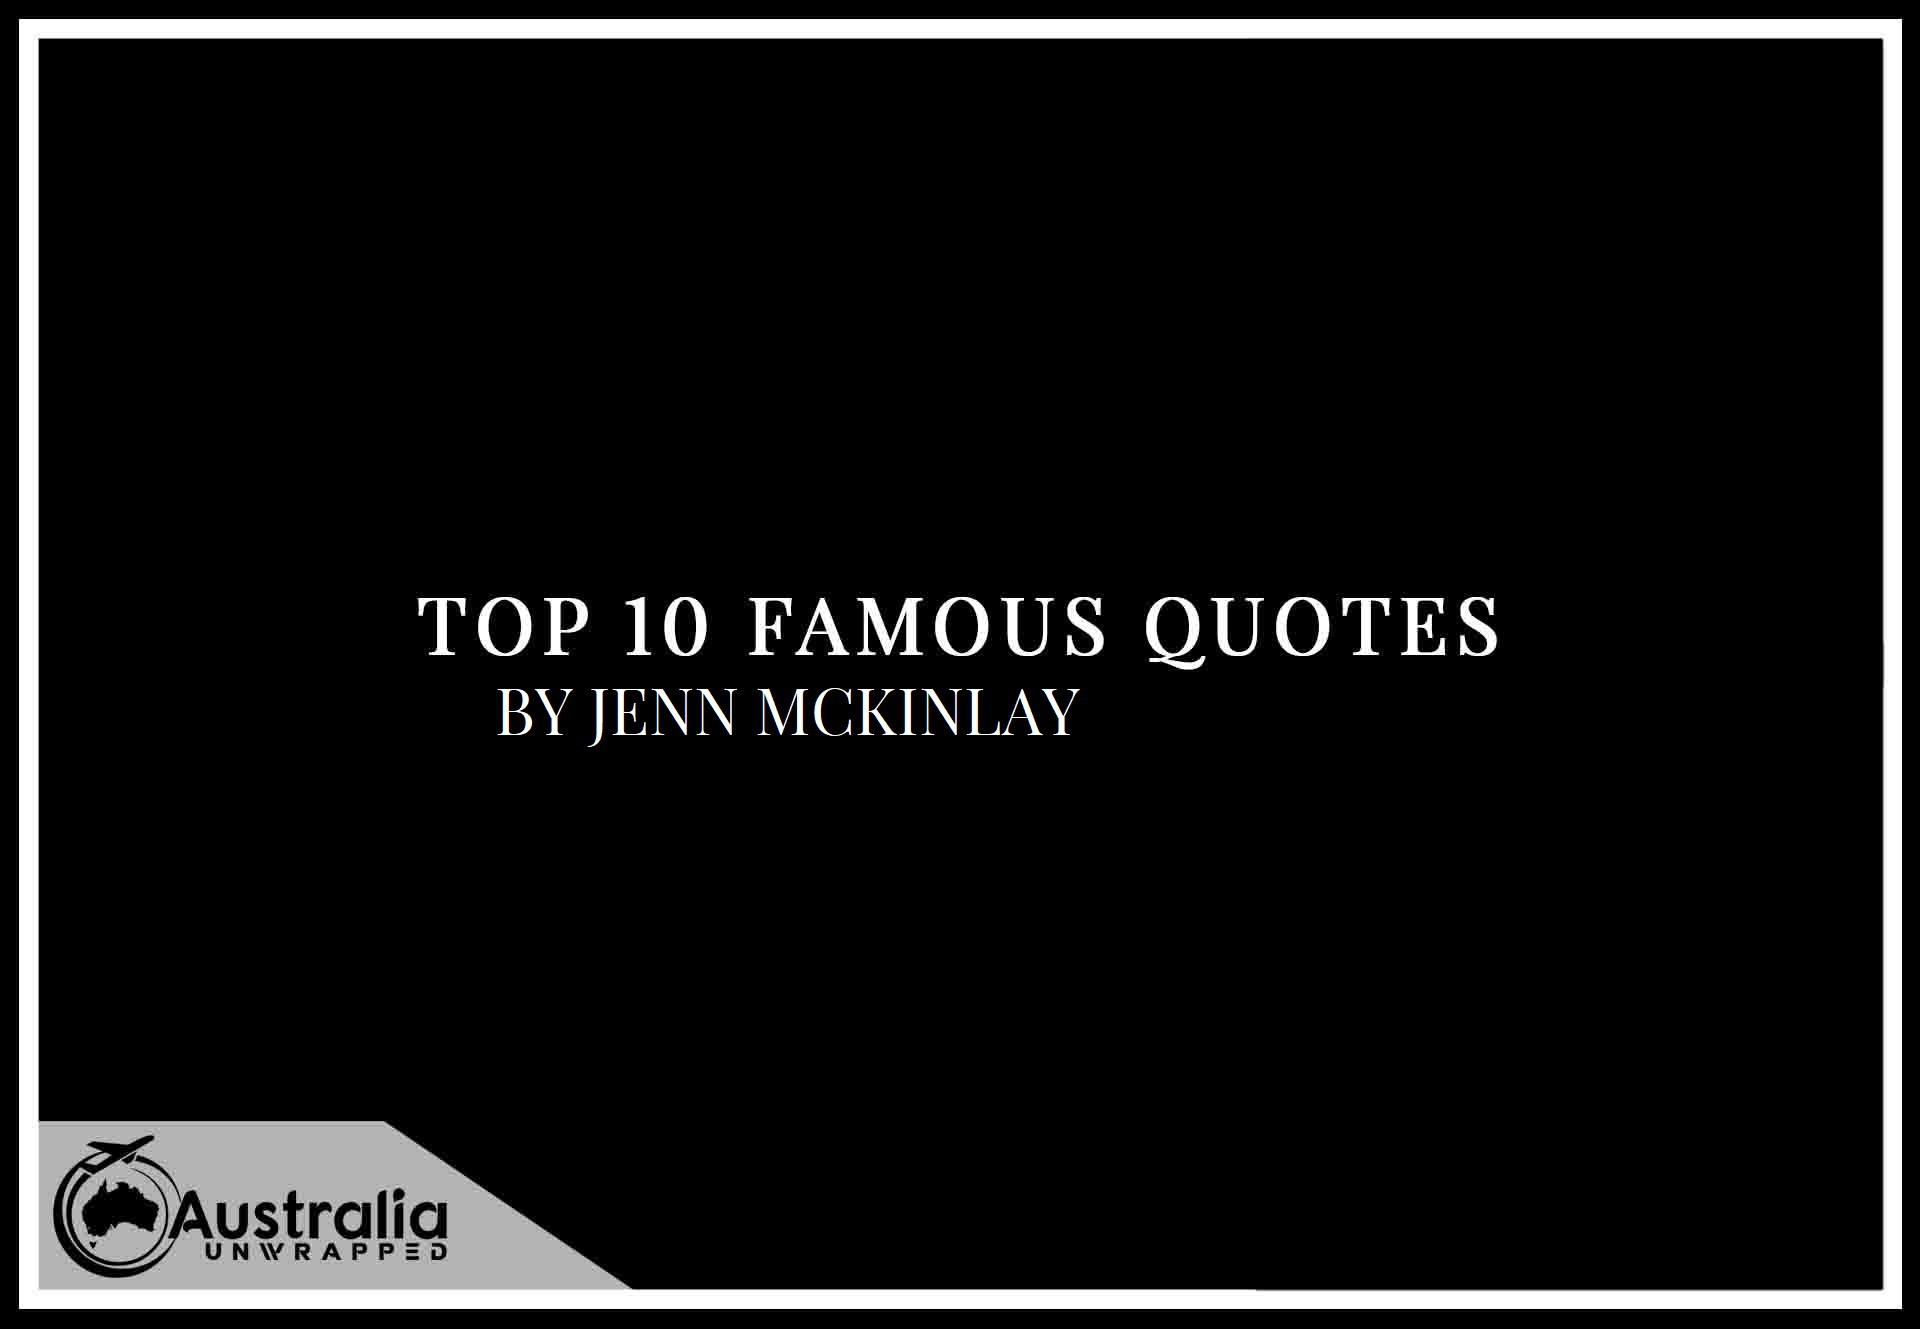 Top 10 Famous Quotes by Author Jenn McKinlay